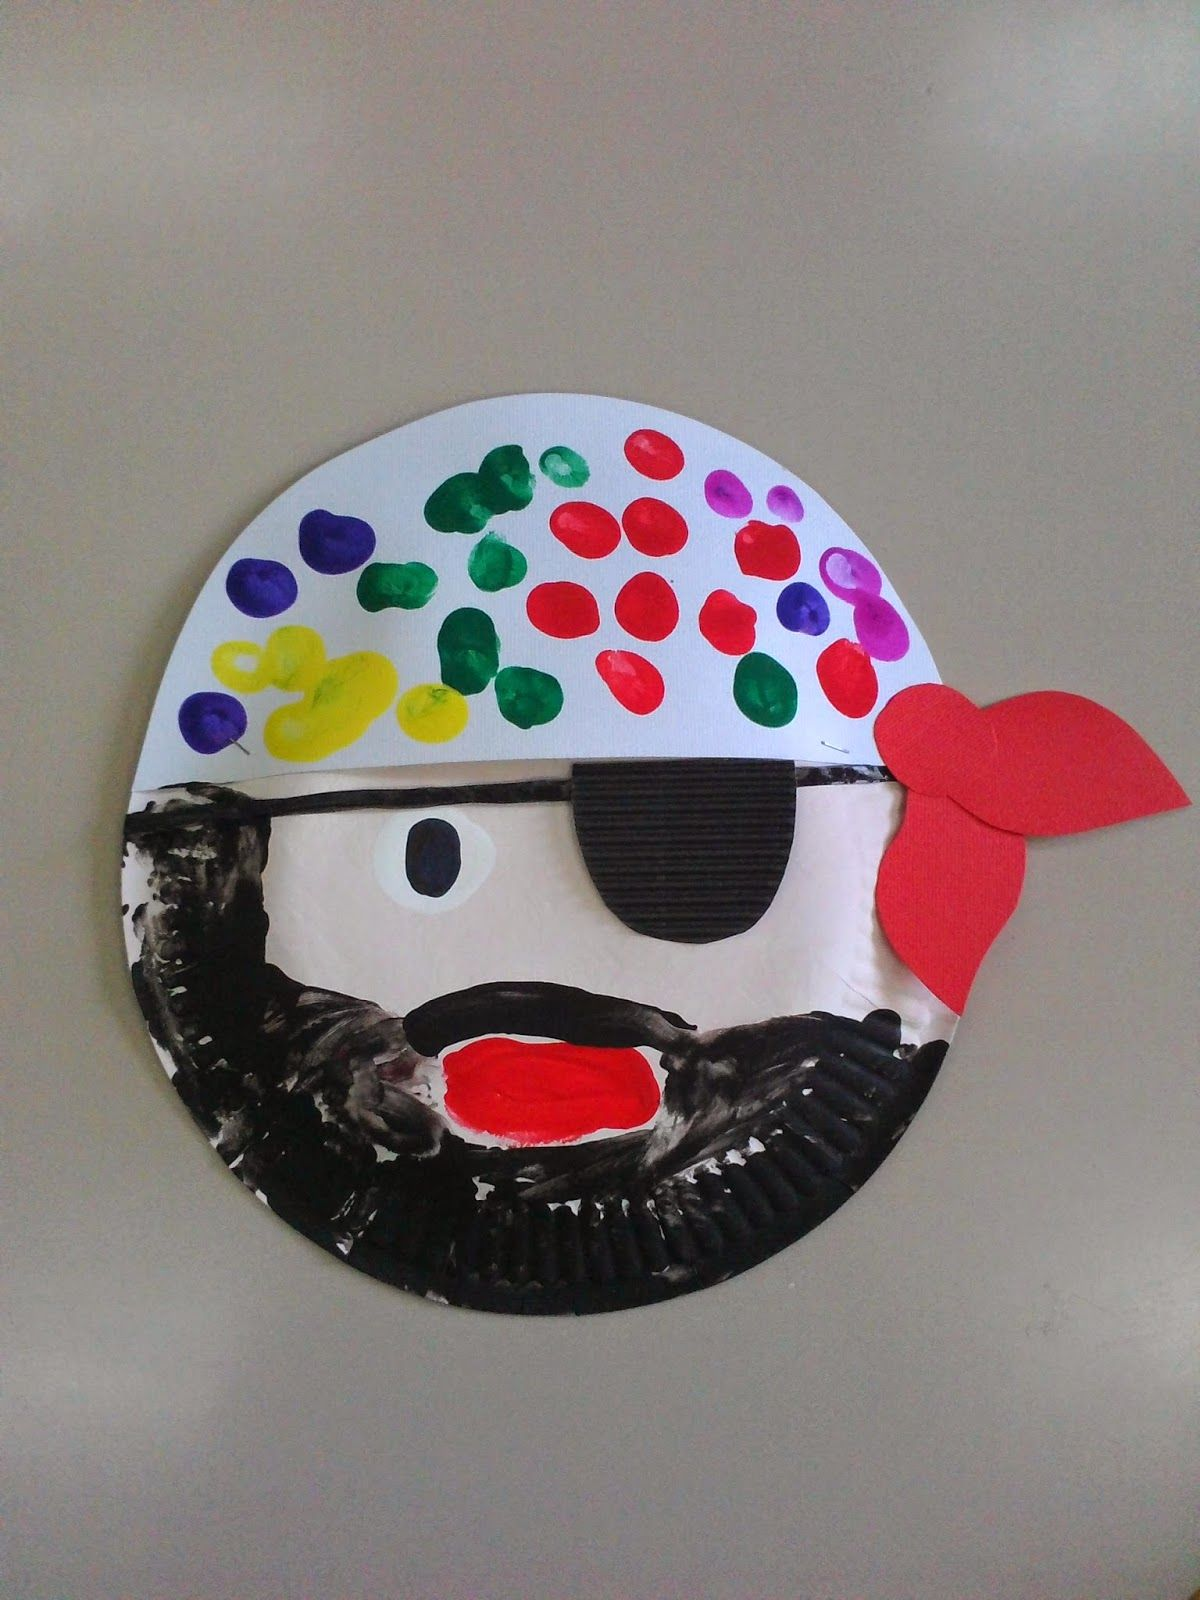 Maro's Kindergarten: Paper Plate Pirate Craft | Zomer/zee | Crafts